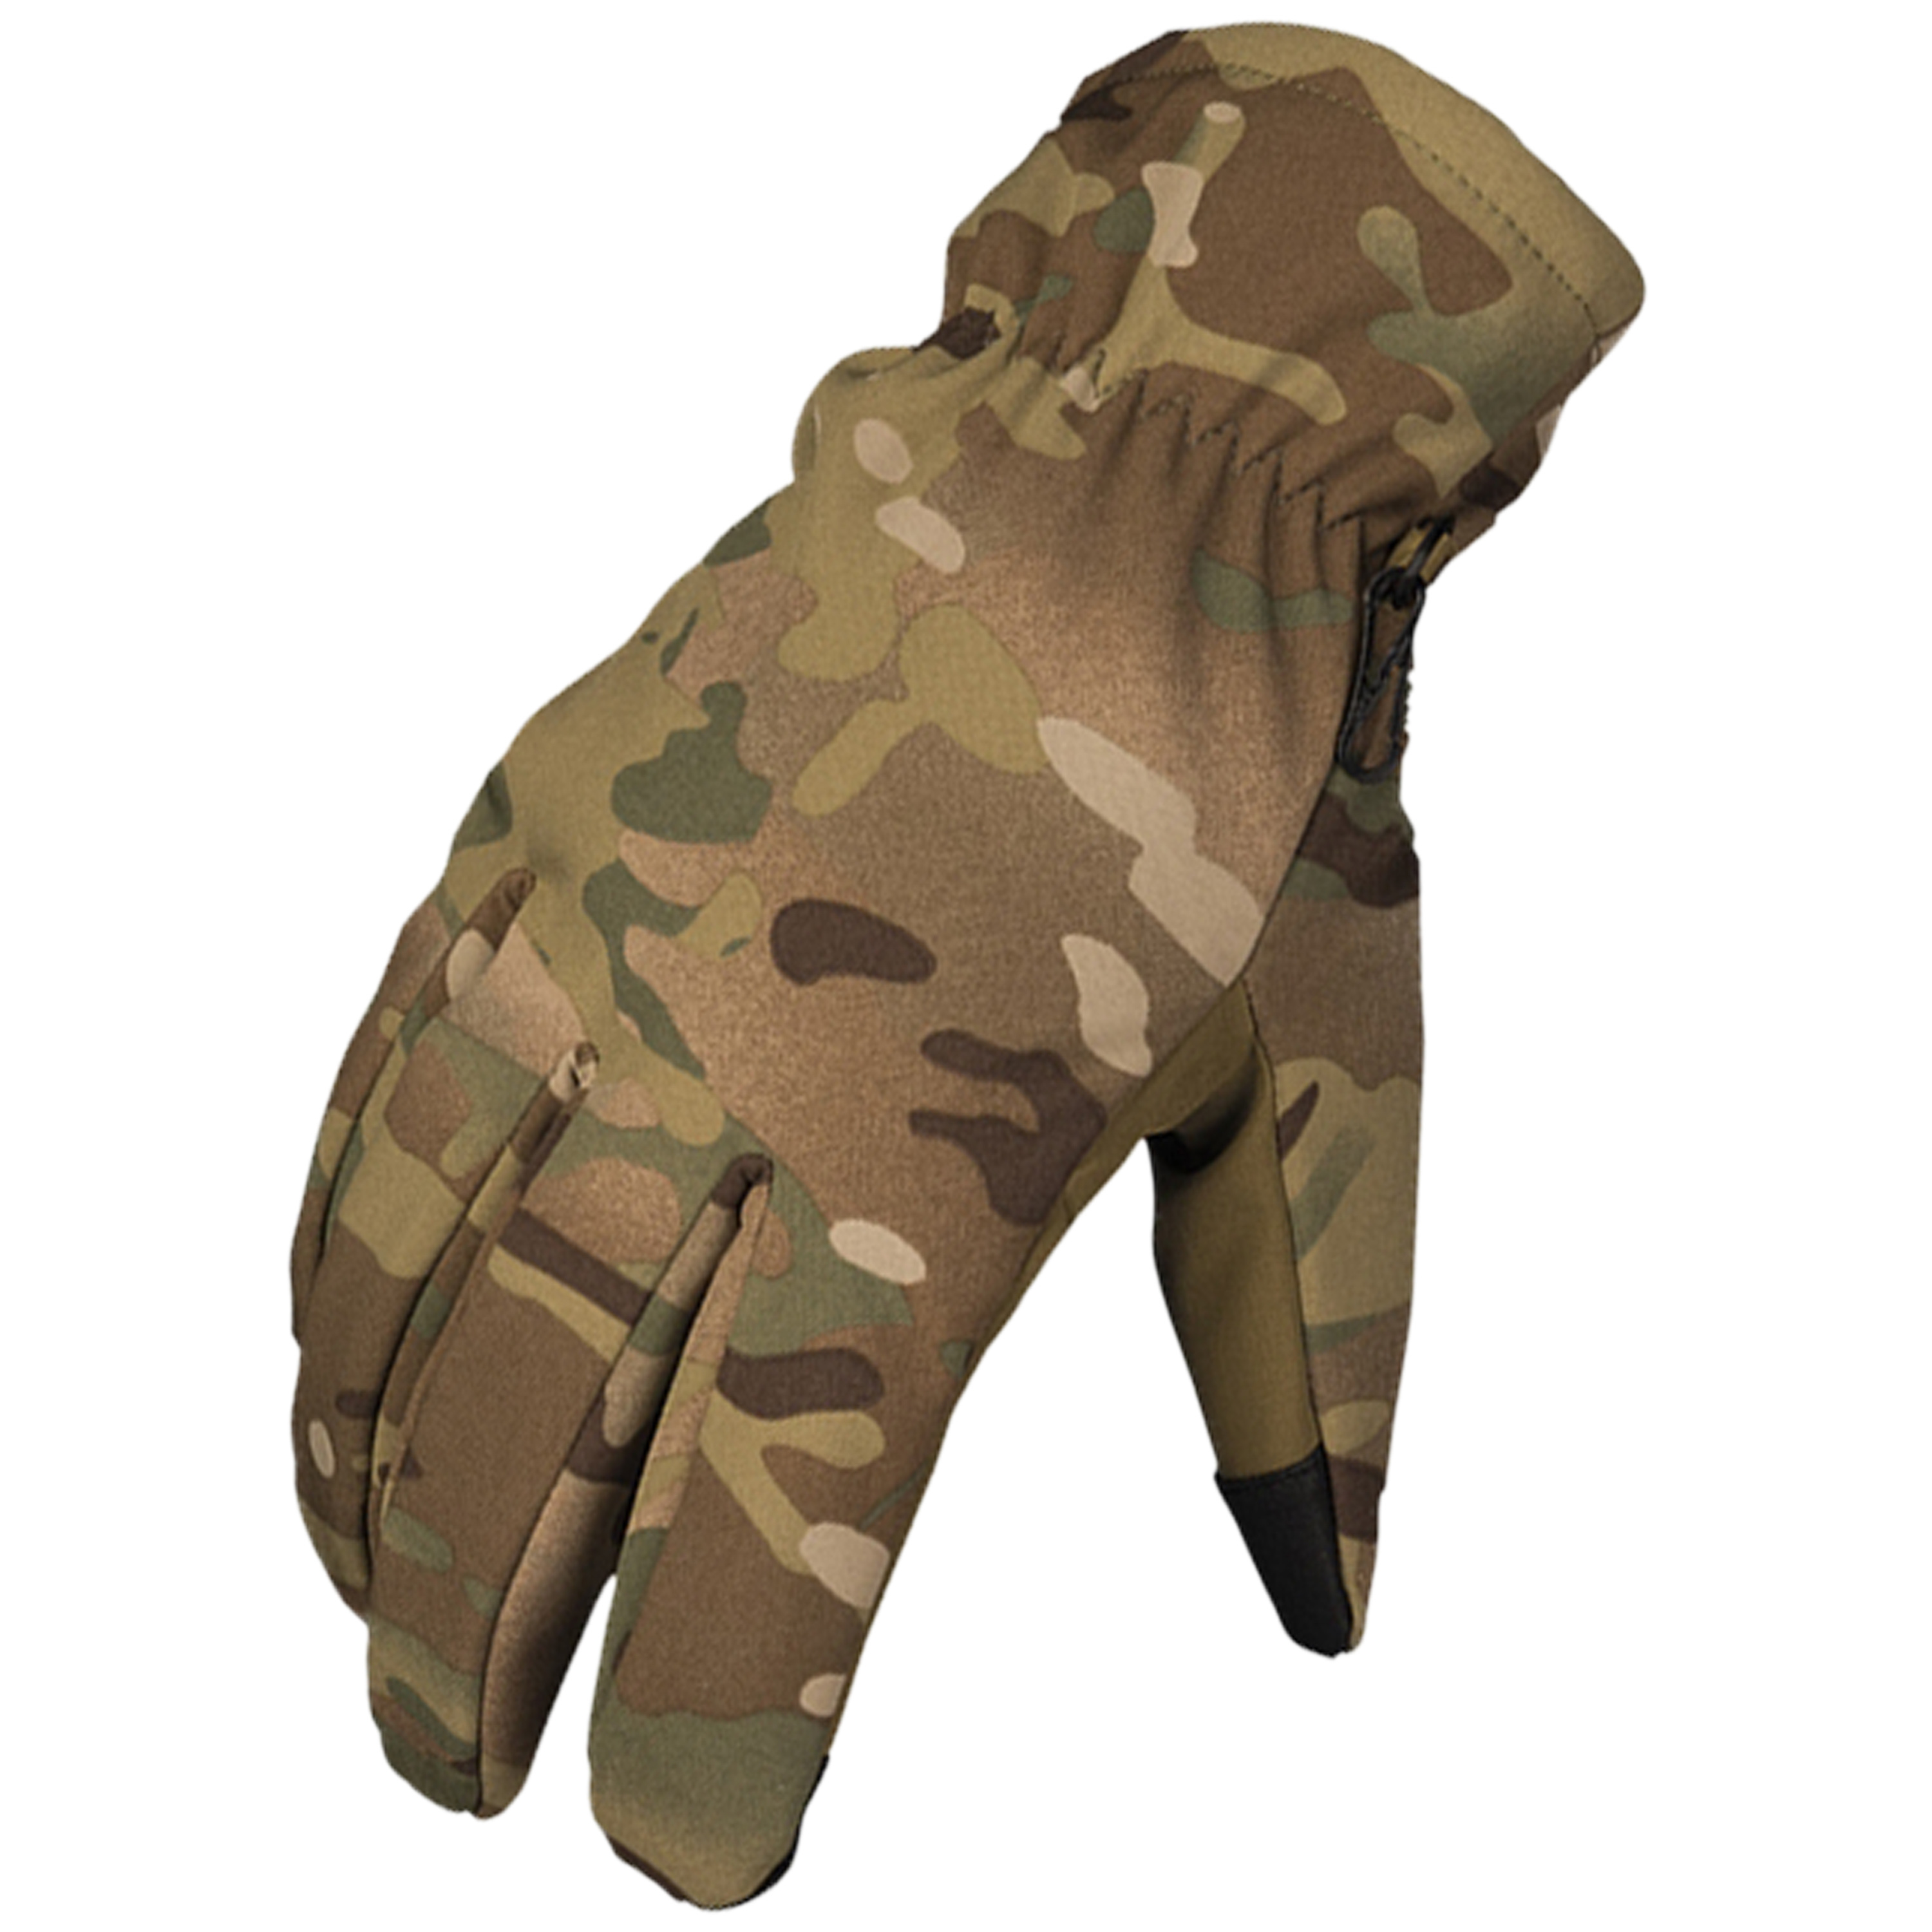 Handschuhe Softshell Thinsulate multitarn